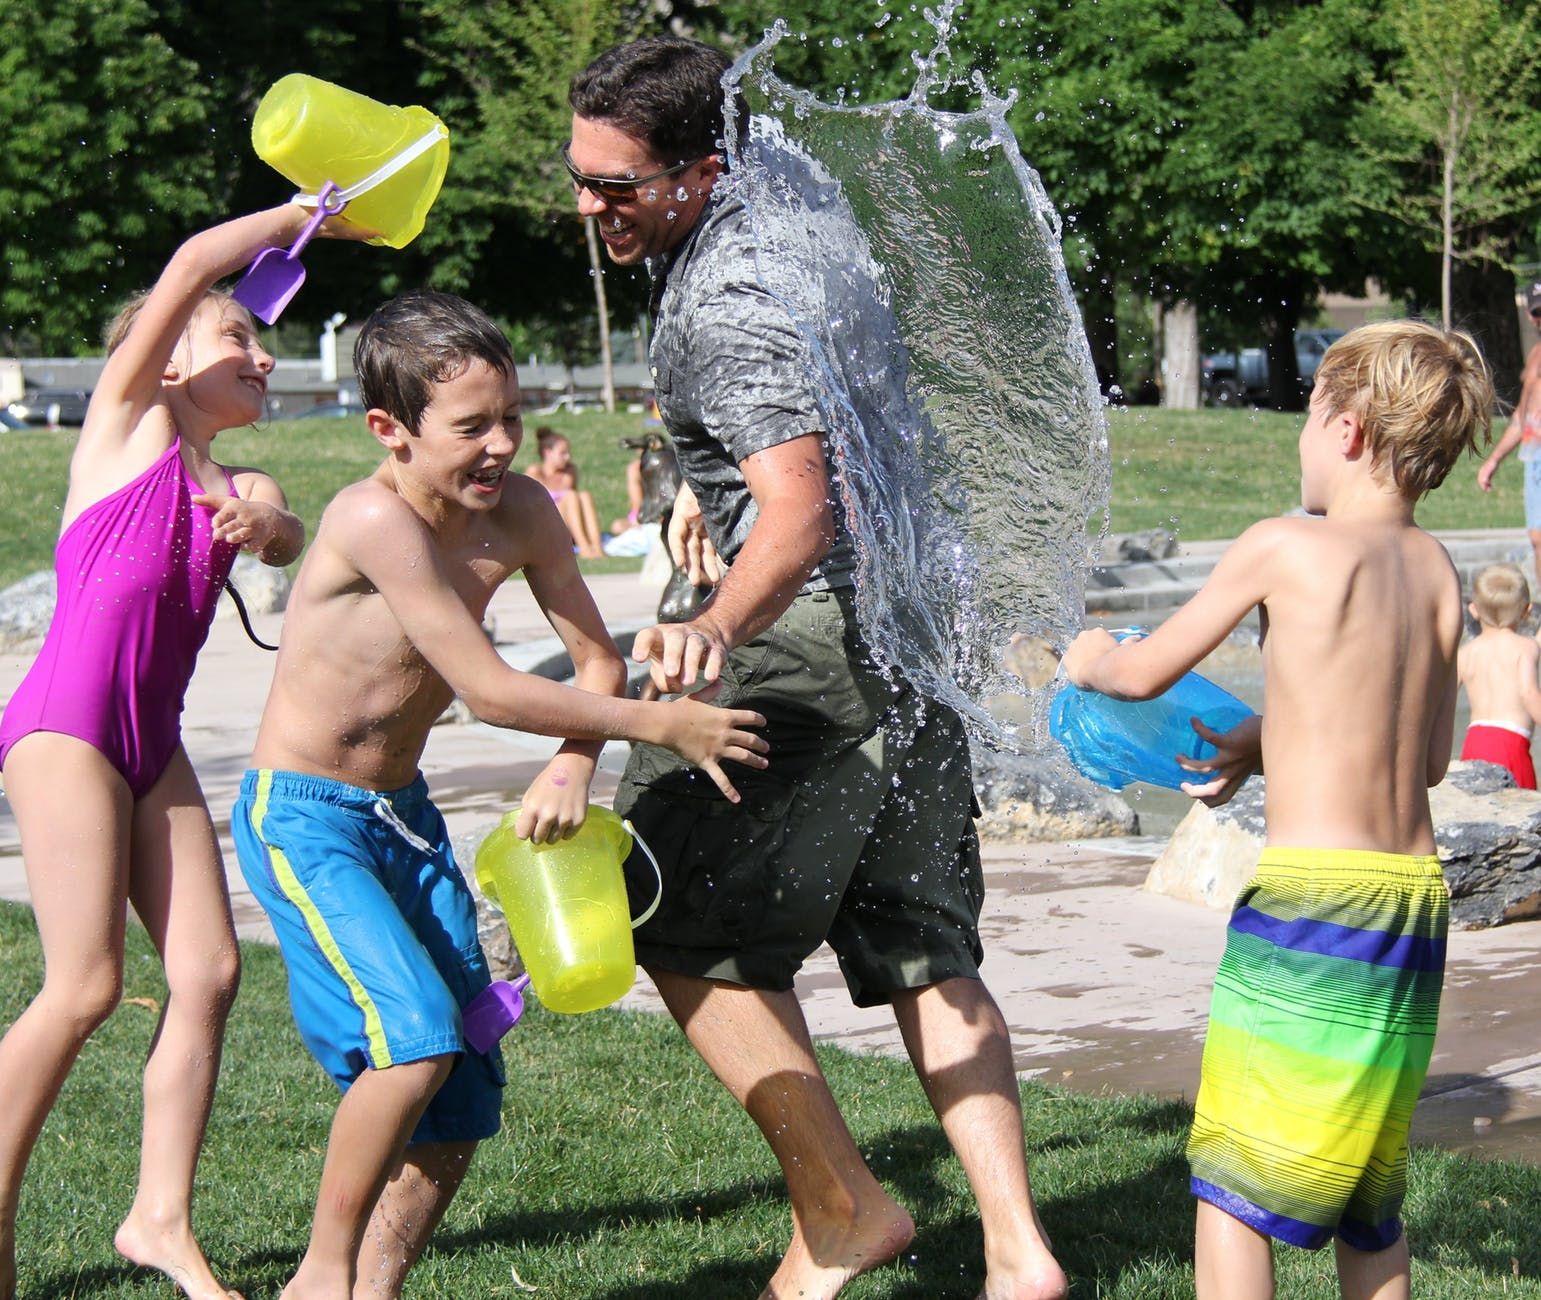 outdoor activity for kids in summer